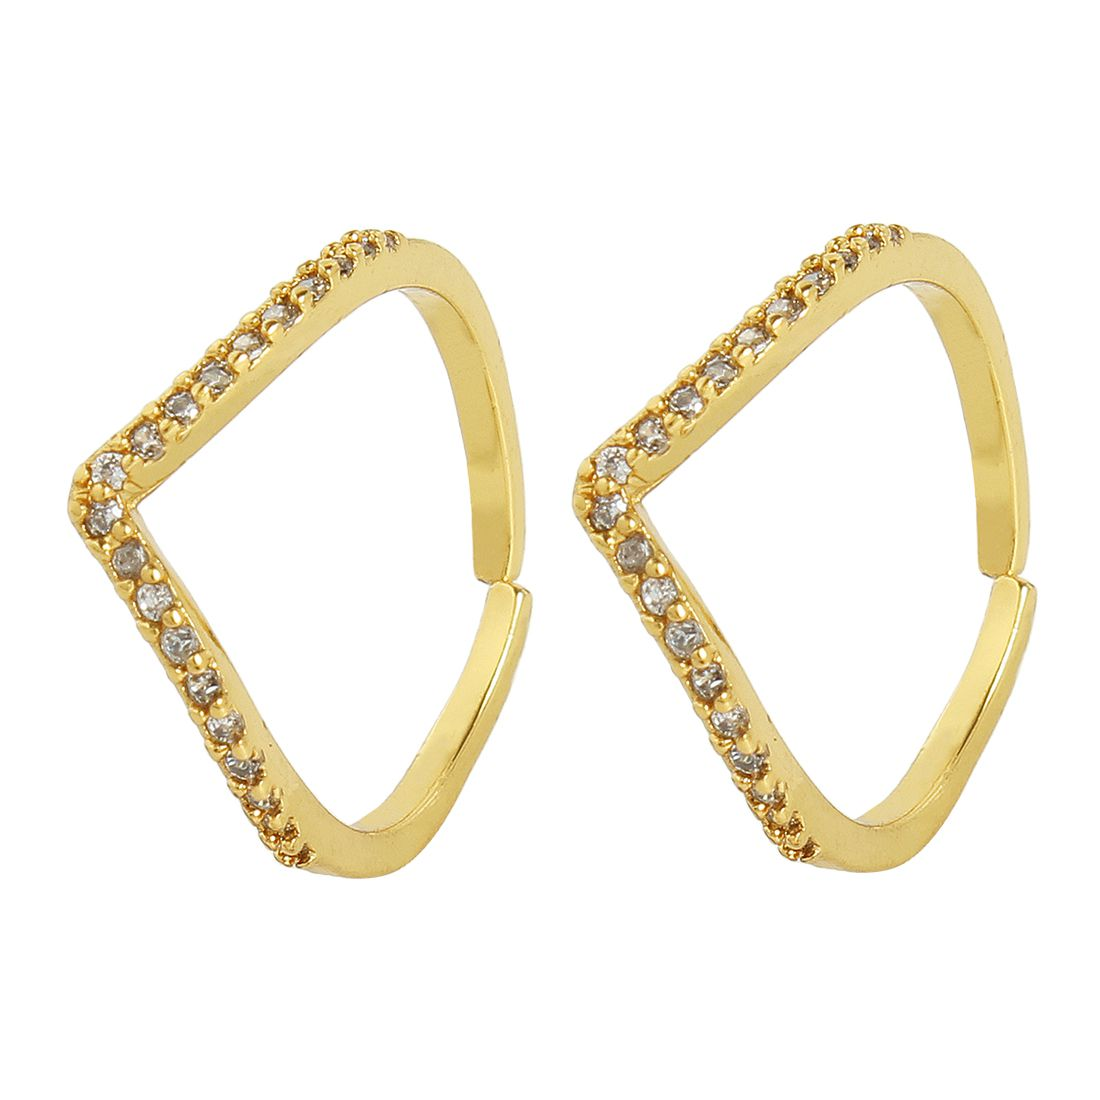 MUCH MORE Ethnic Gold Tone Toe Ring  With Crystal stone Traditional Jewellery for Women's